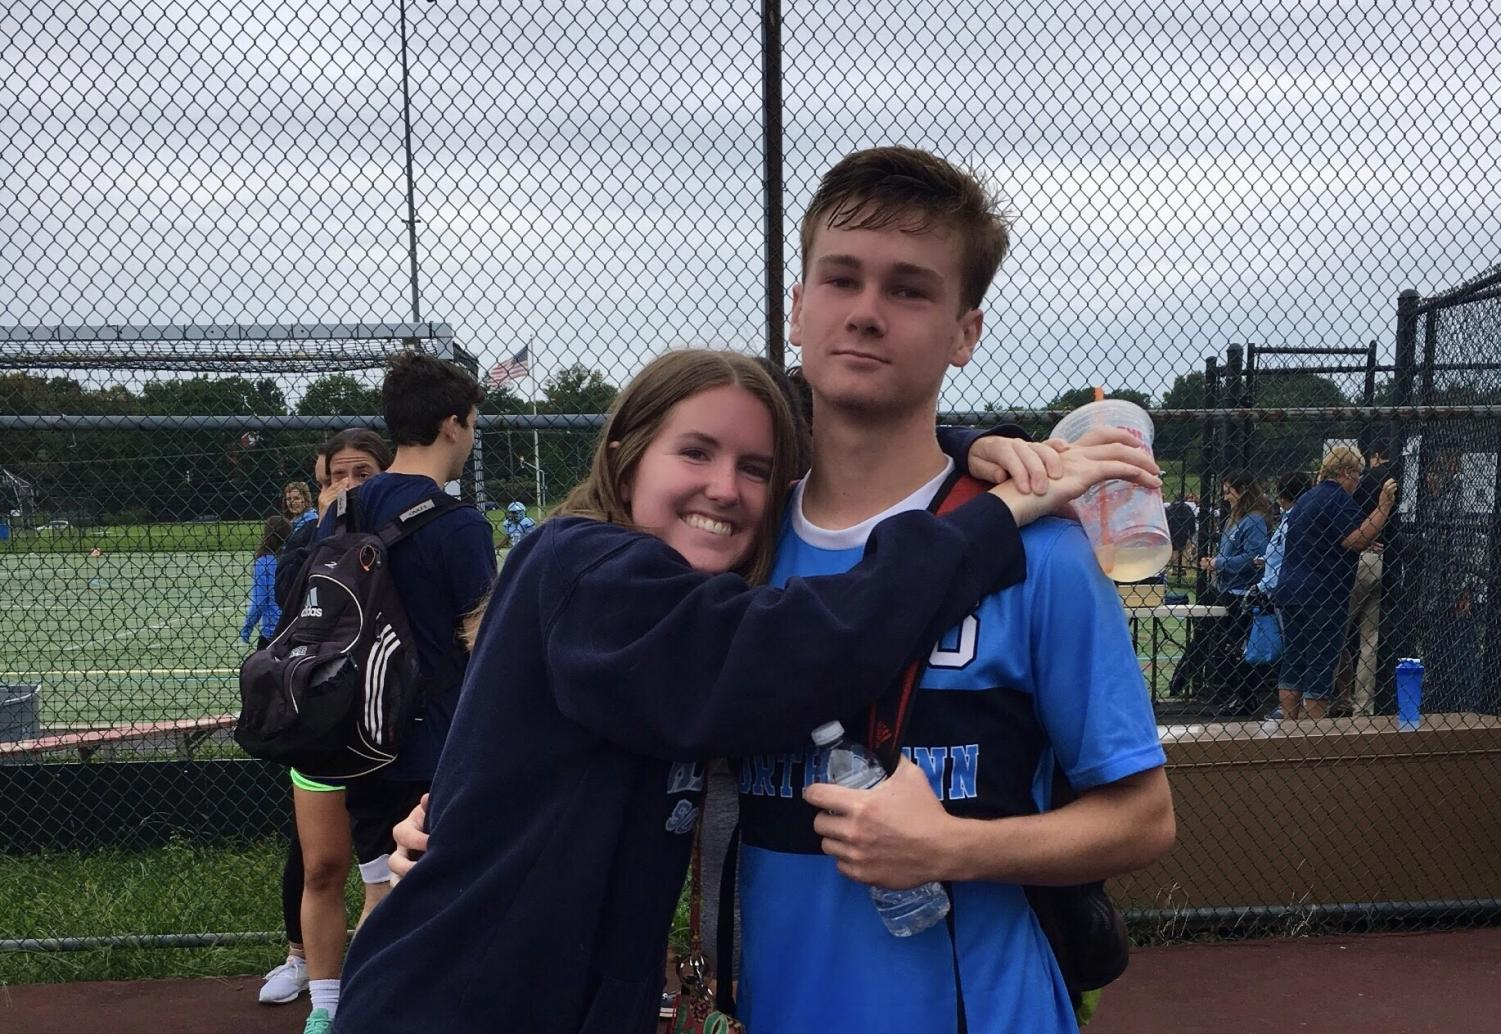 Liv and Aidan supporting each other at their North Penn soccer games.